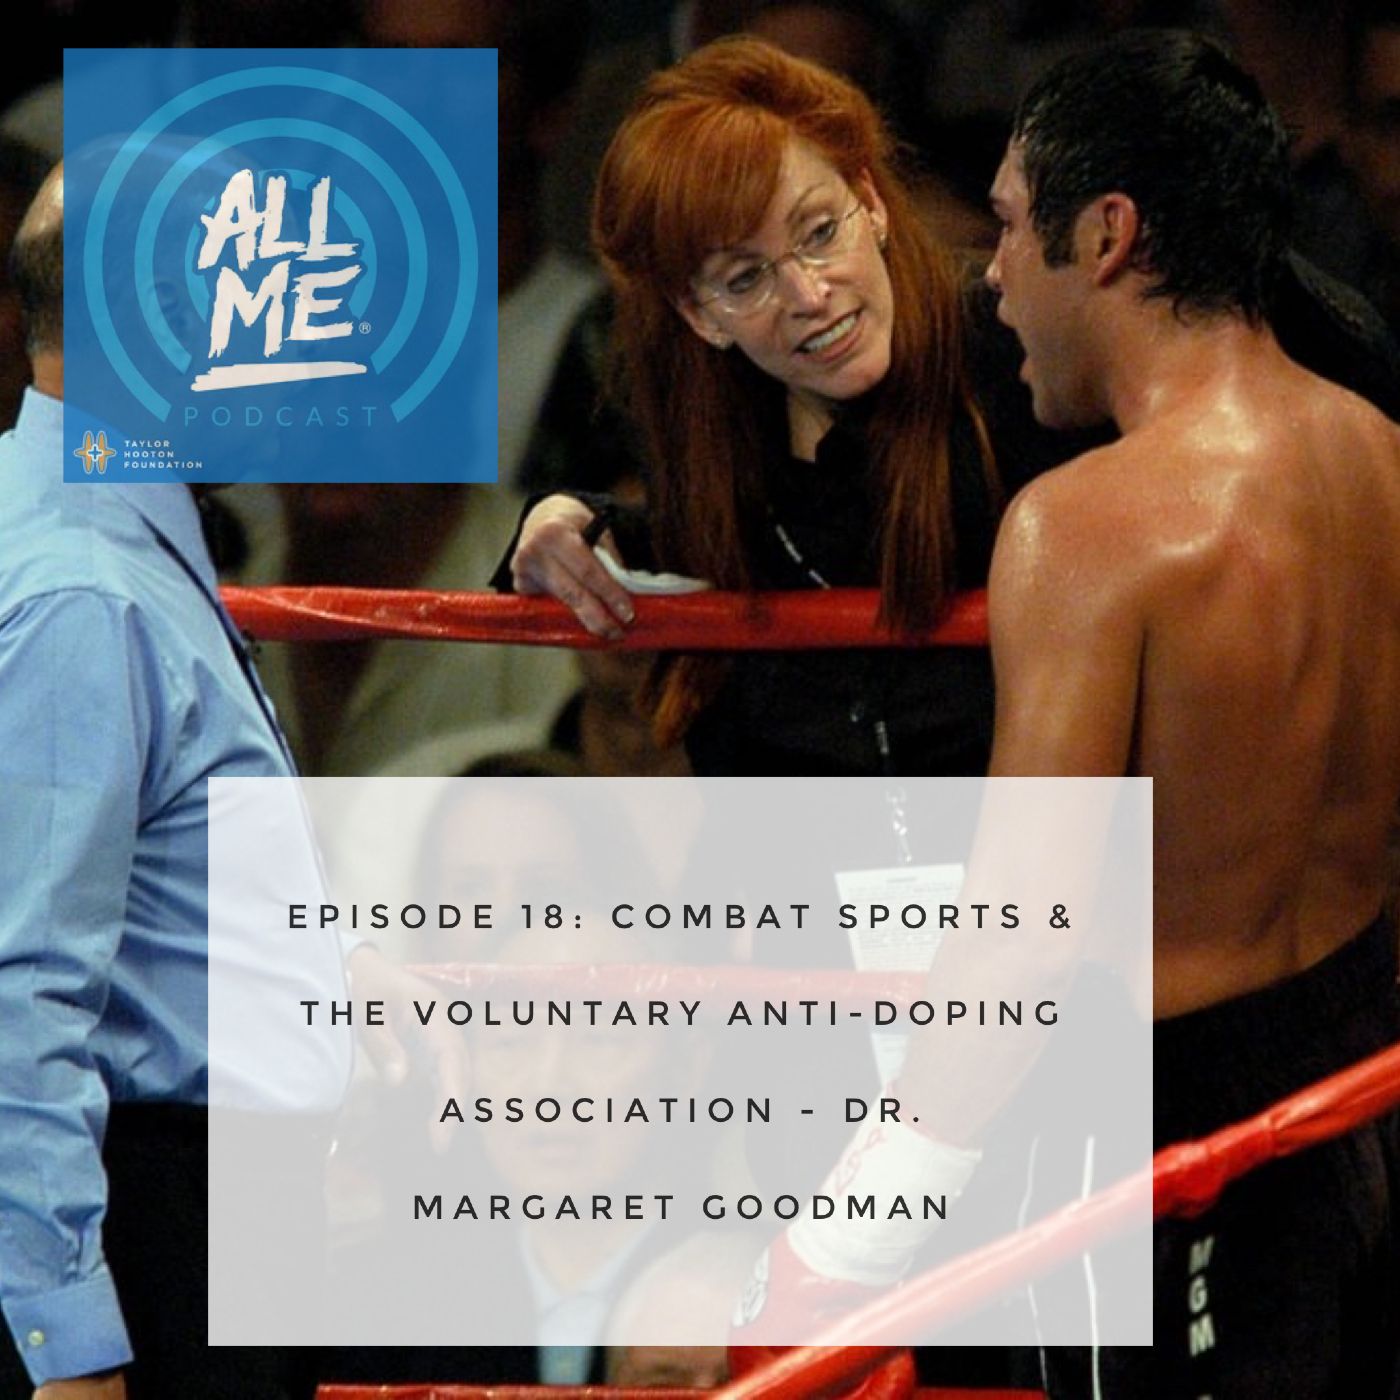 Episode 18: Combat Sports & Drug Testing – Dr. Margaret Goodman